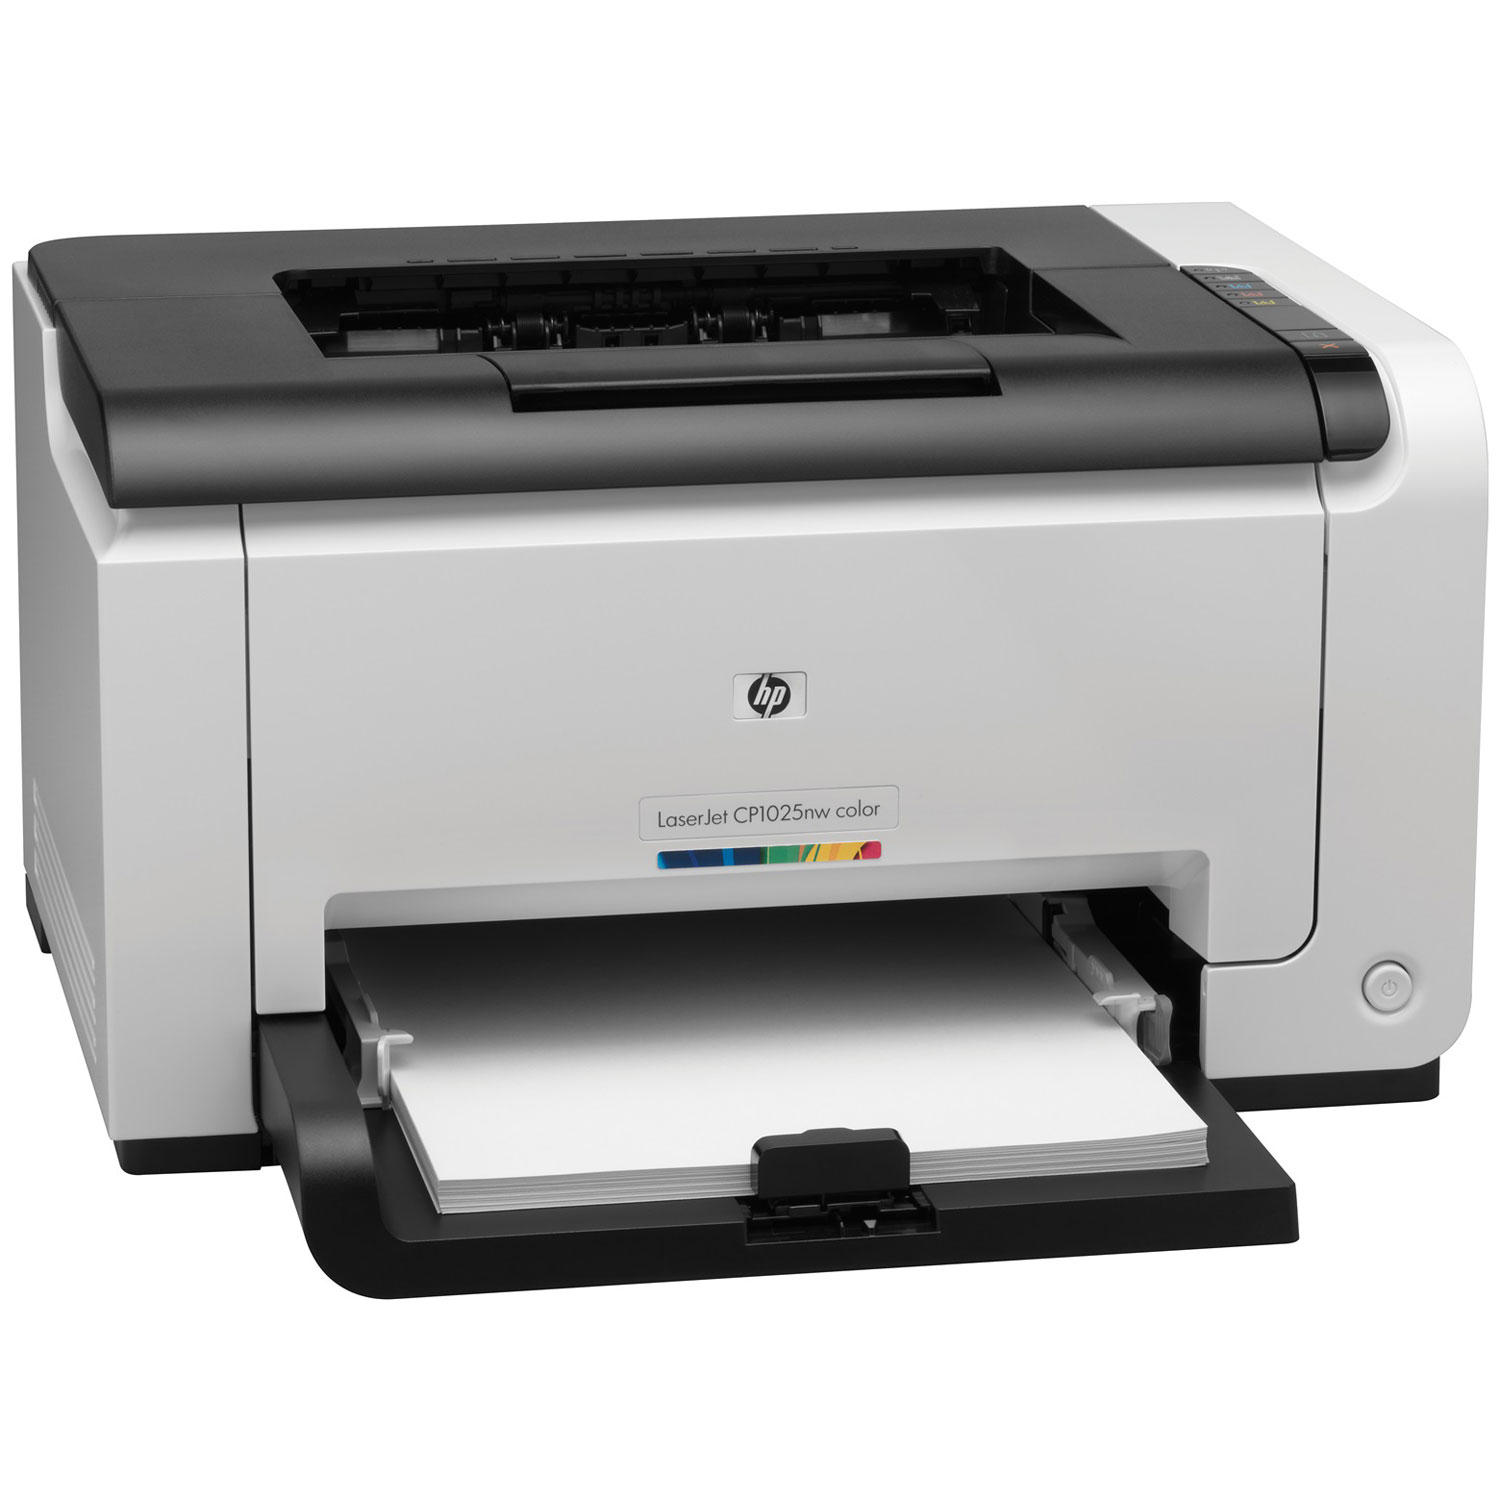 hp laserjet pro cp1025nw imprimante laser hp sur. Black Bedroom Furniture Sets. Home Design Ideas